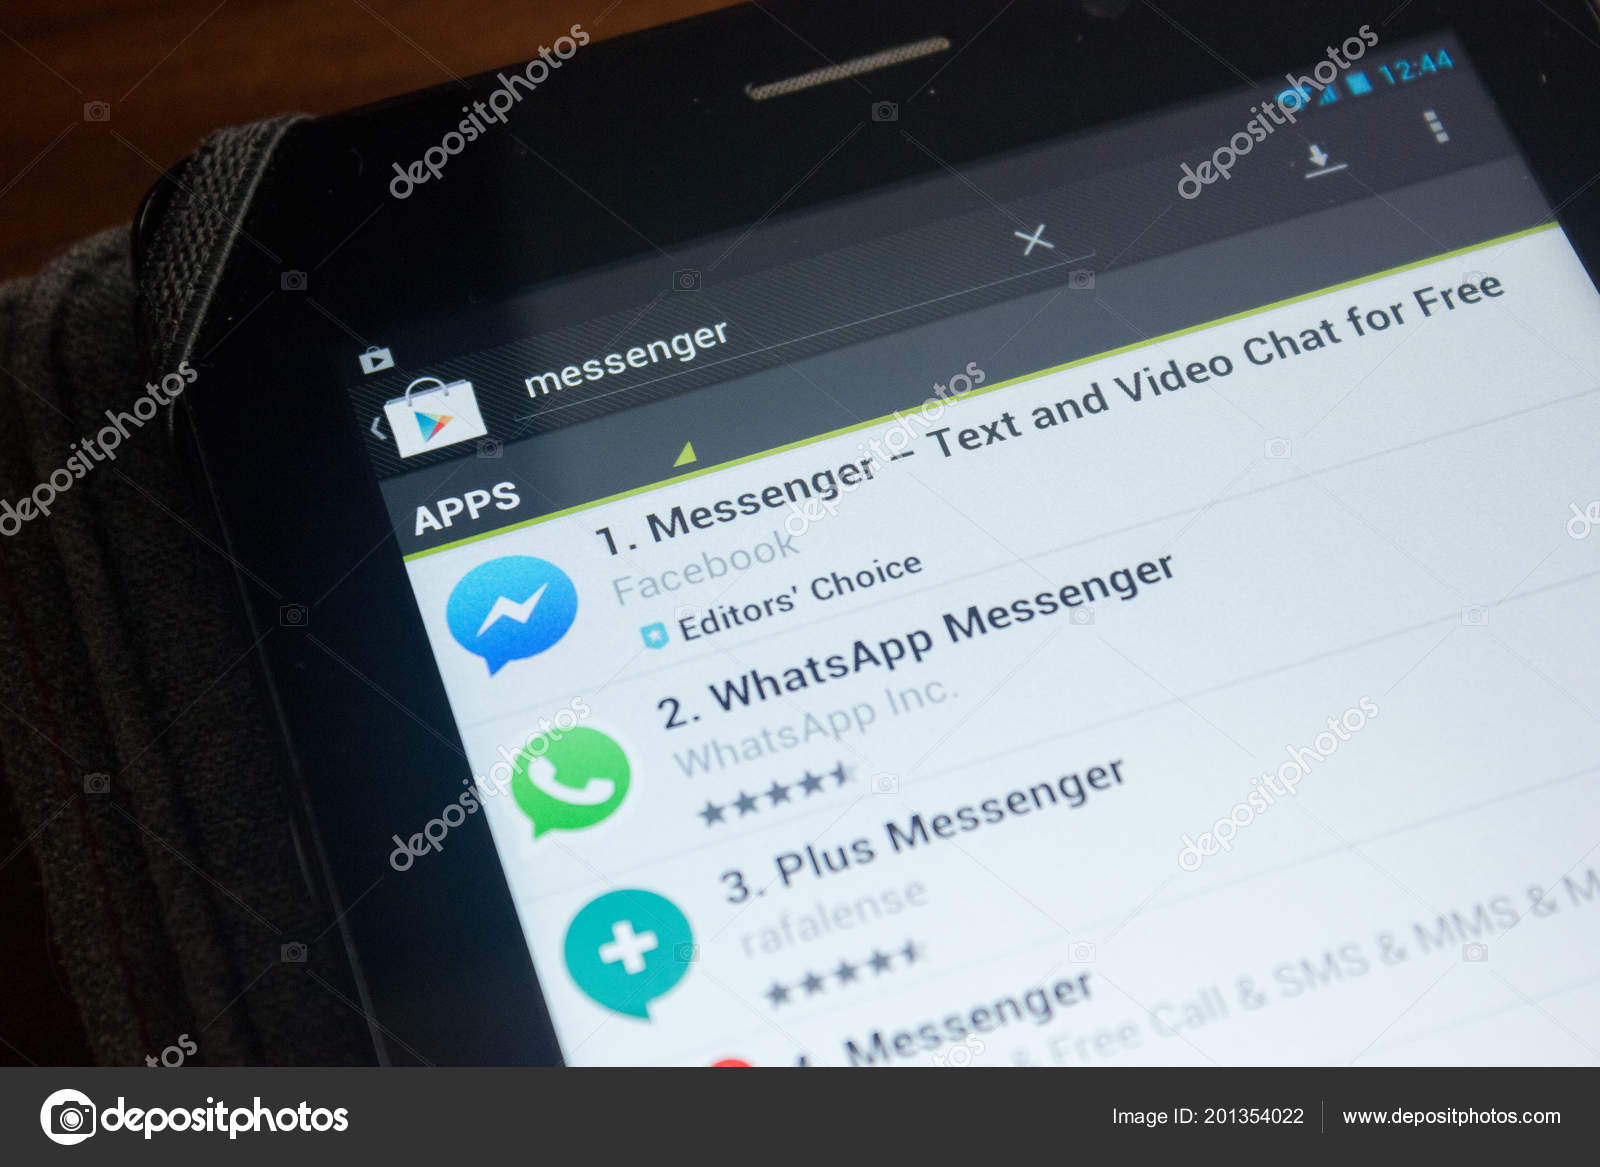 Ryazan Russia June 2018 Messenger Text Video Chat Free Icon – Stock